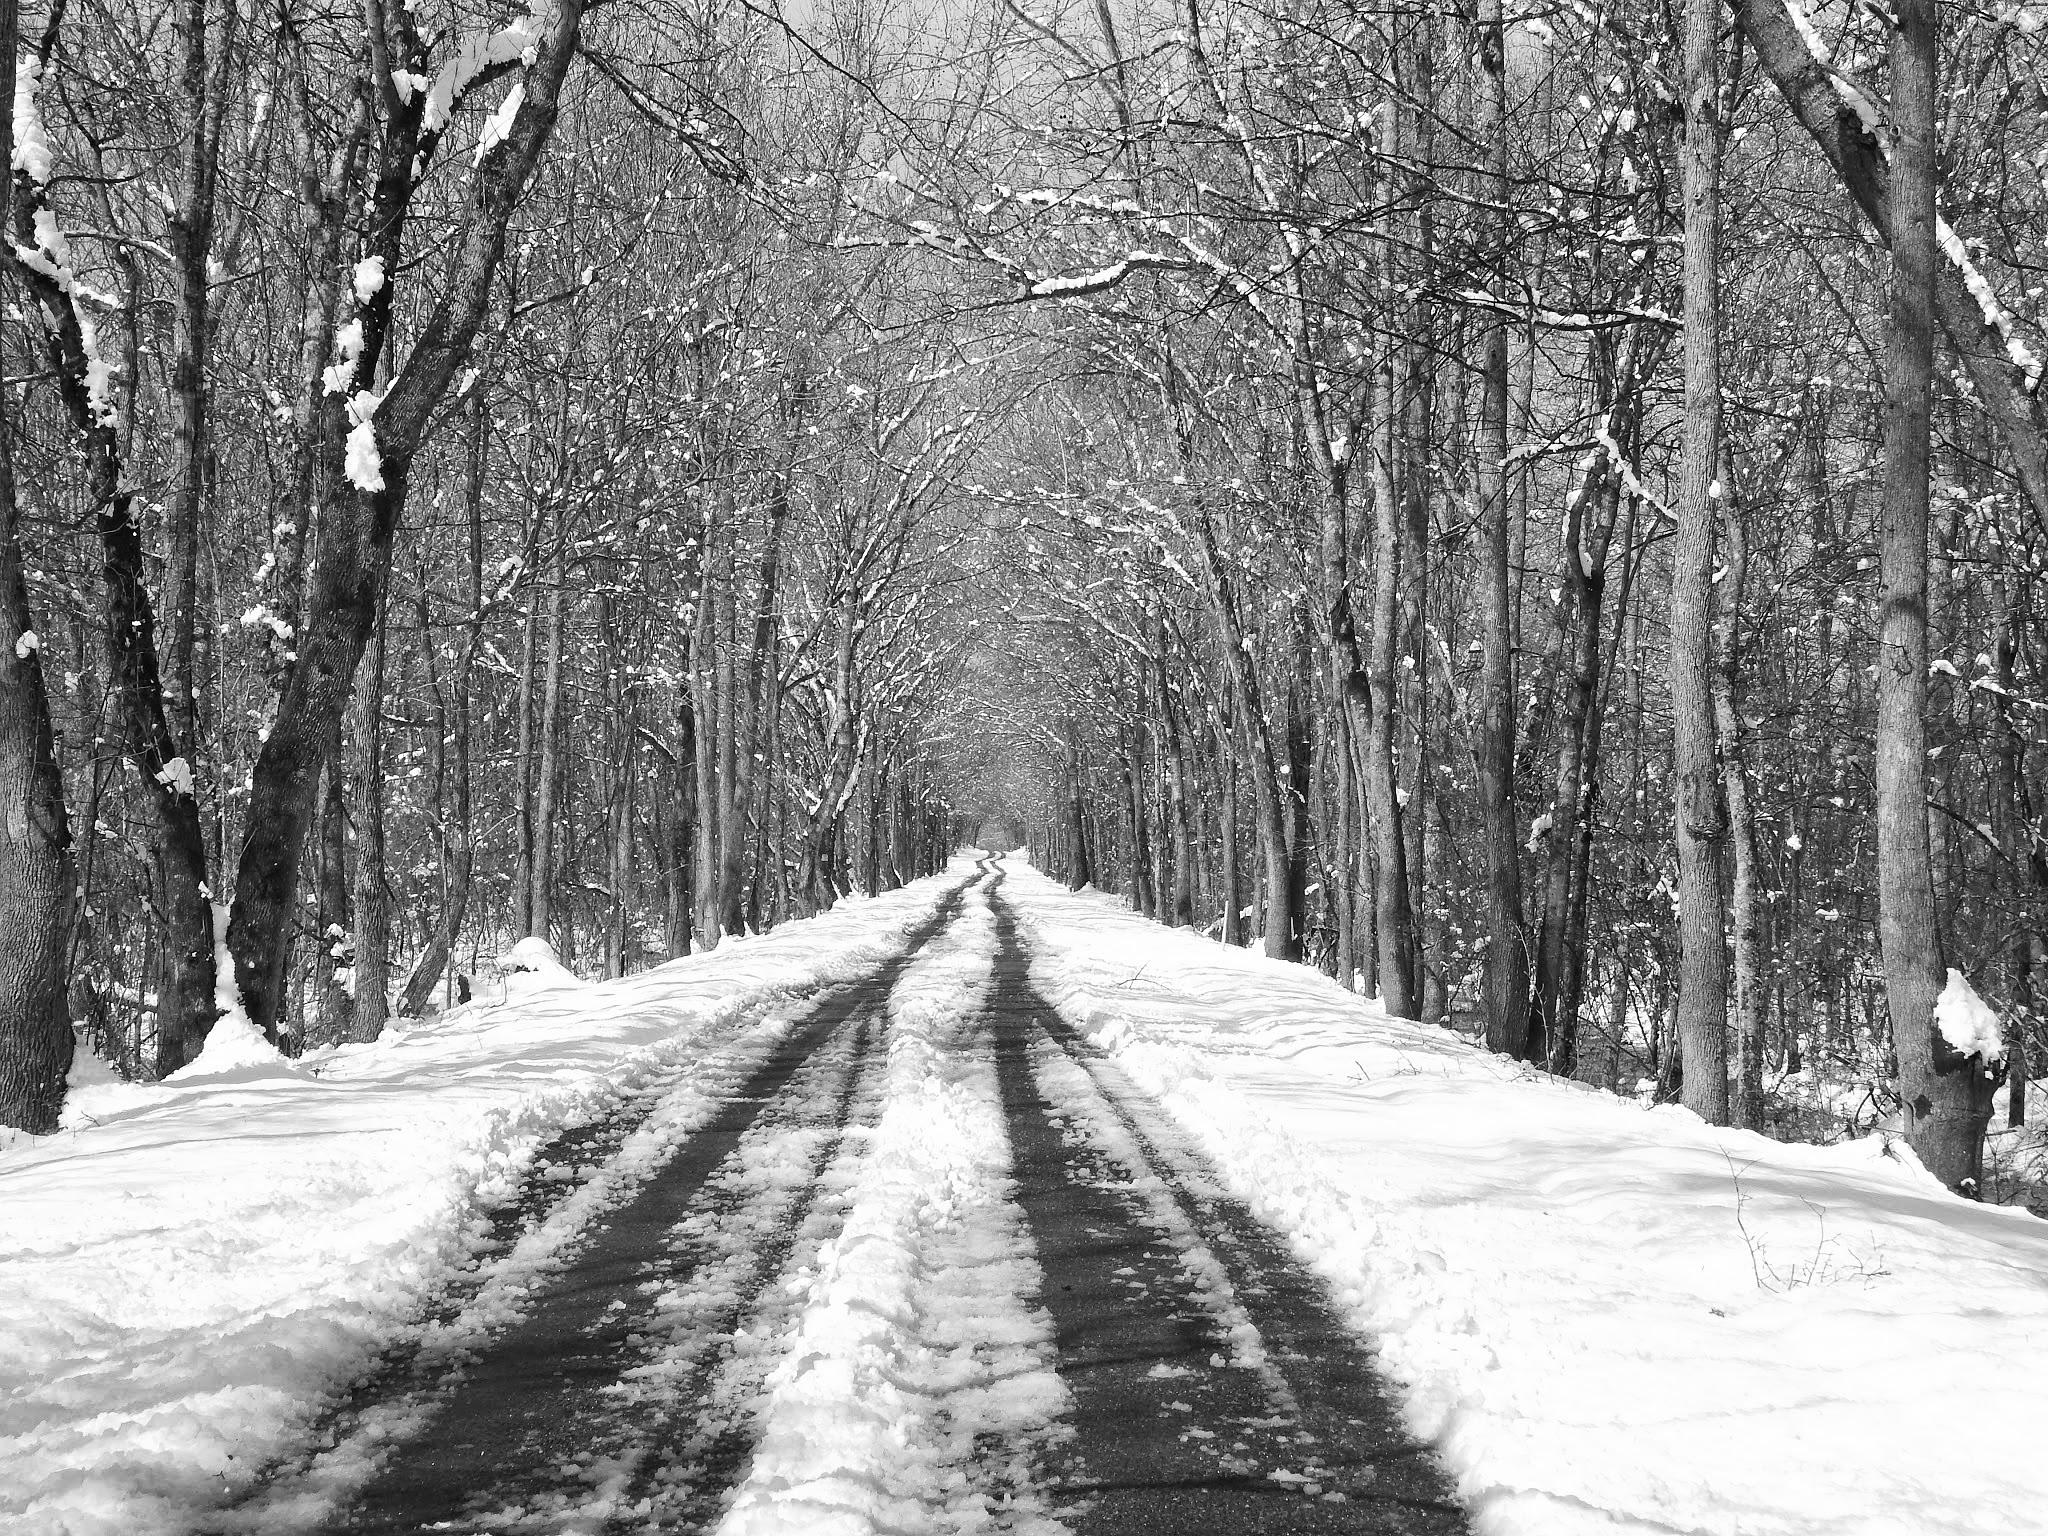 Long Snowy Road by Cindy Eddy